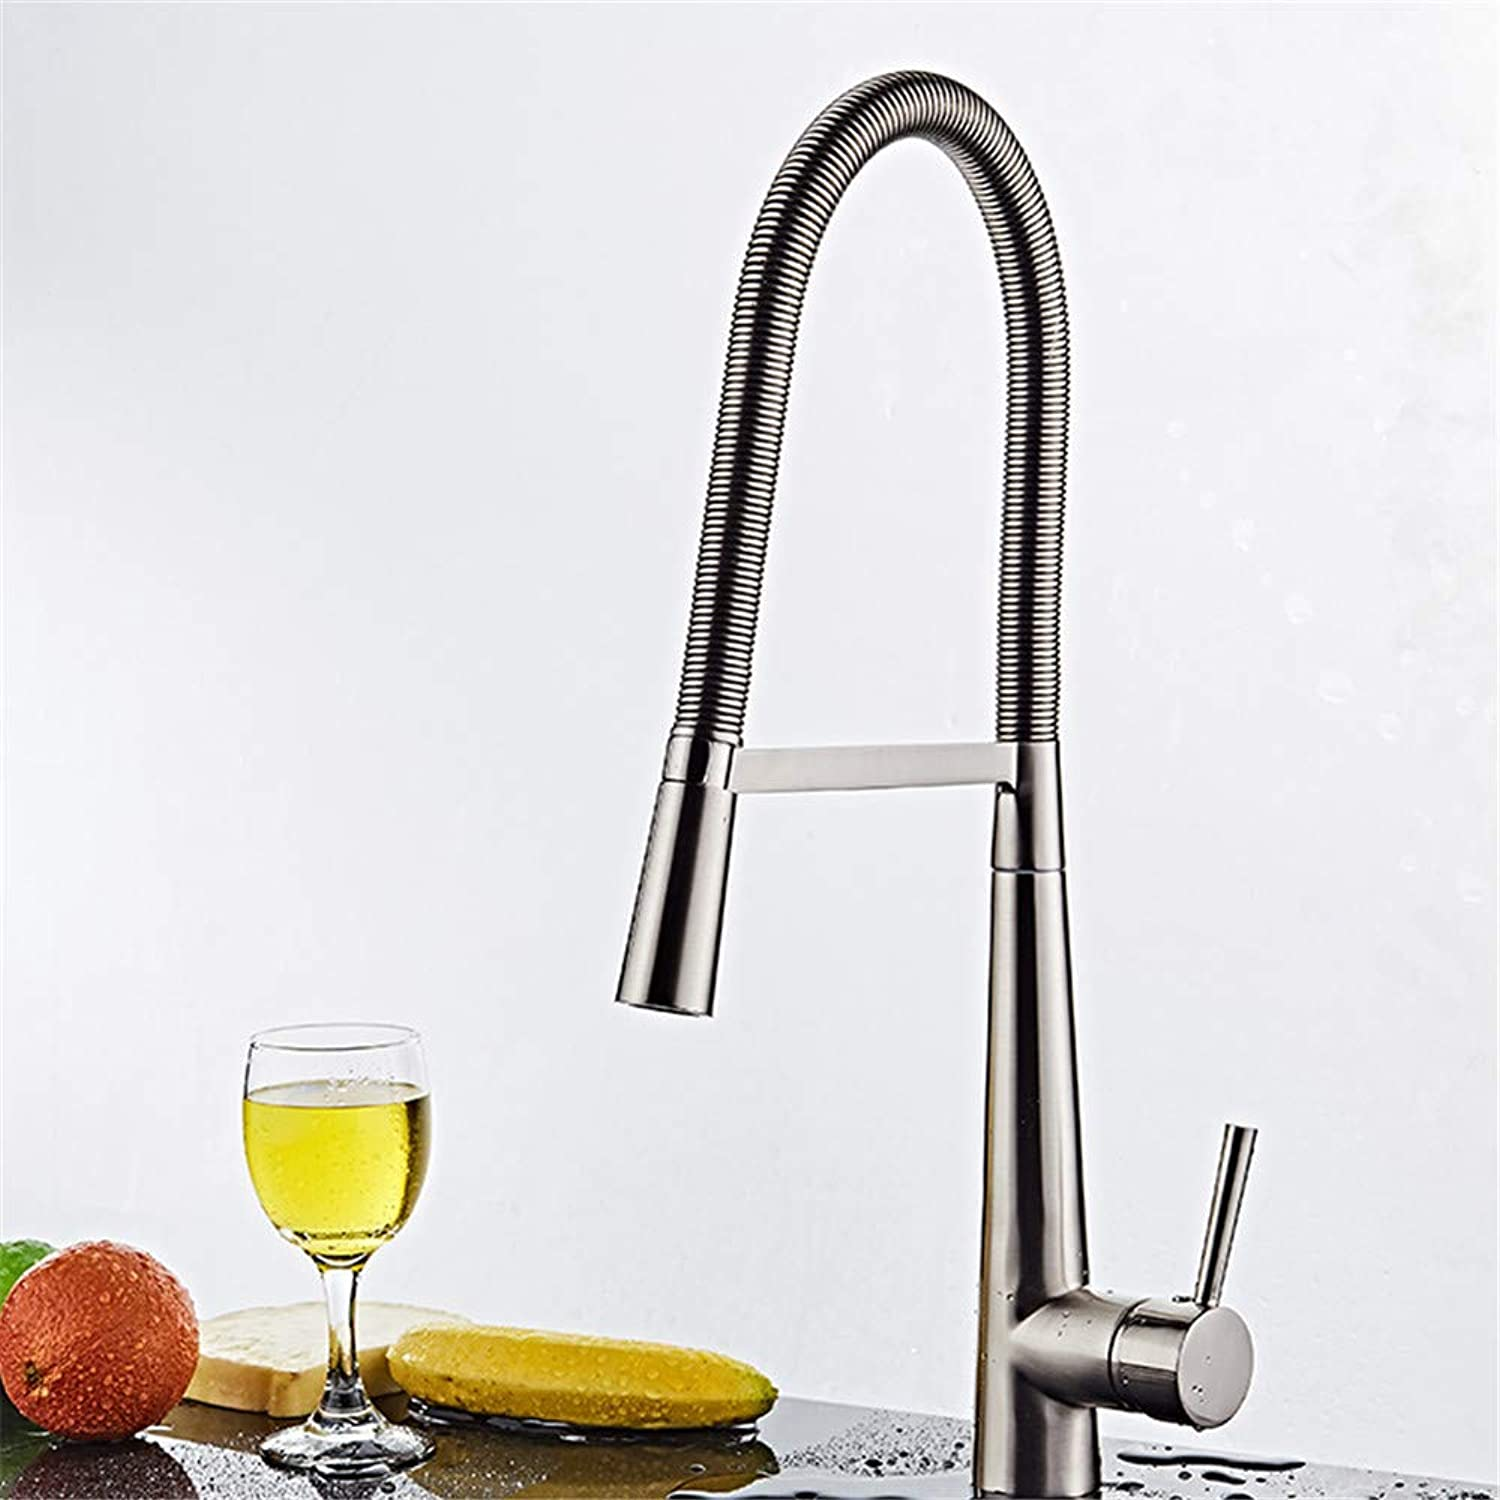 YAWEDA Copper Copper Copper Kitchen Faucet Long Bending Spring Cabbage Pot Faucet Kitchen Faucet Kitchen Sink Faucet Stainless Steel Kitchen Cold and Hot Water Mixer Faucet bbd9cc